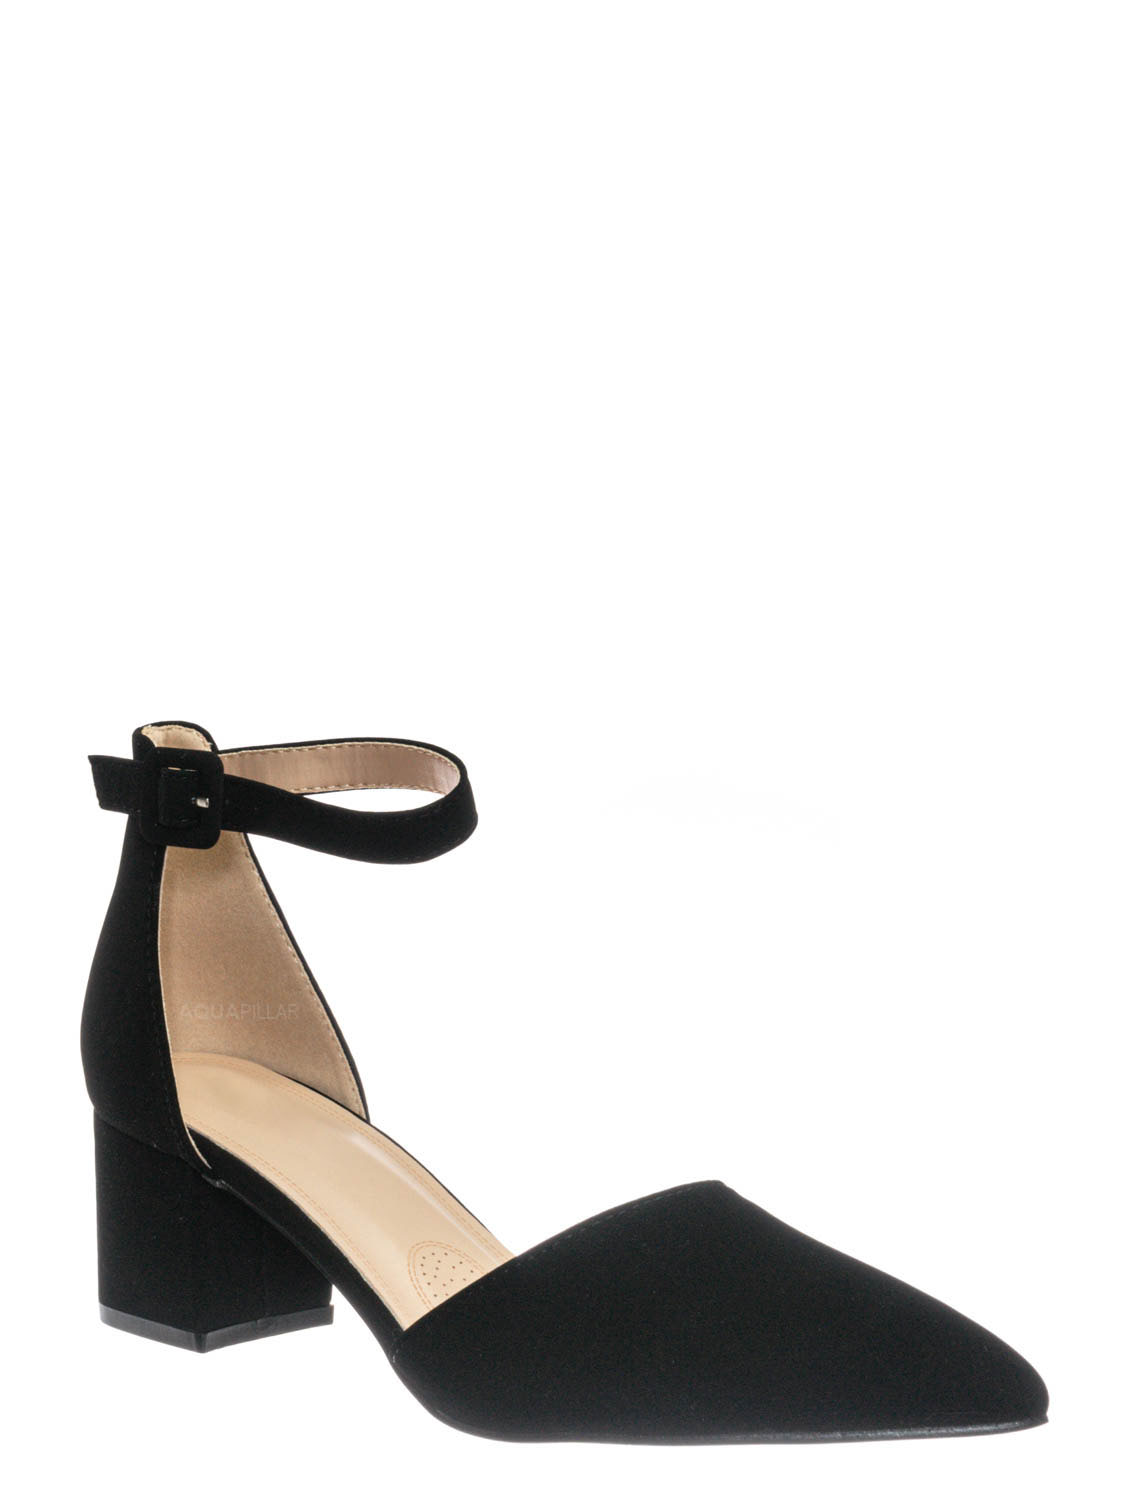 d'Orsay Pump - Pointed Toe